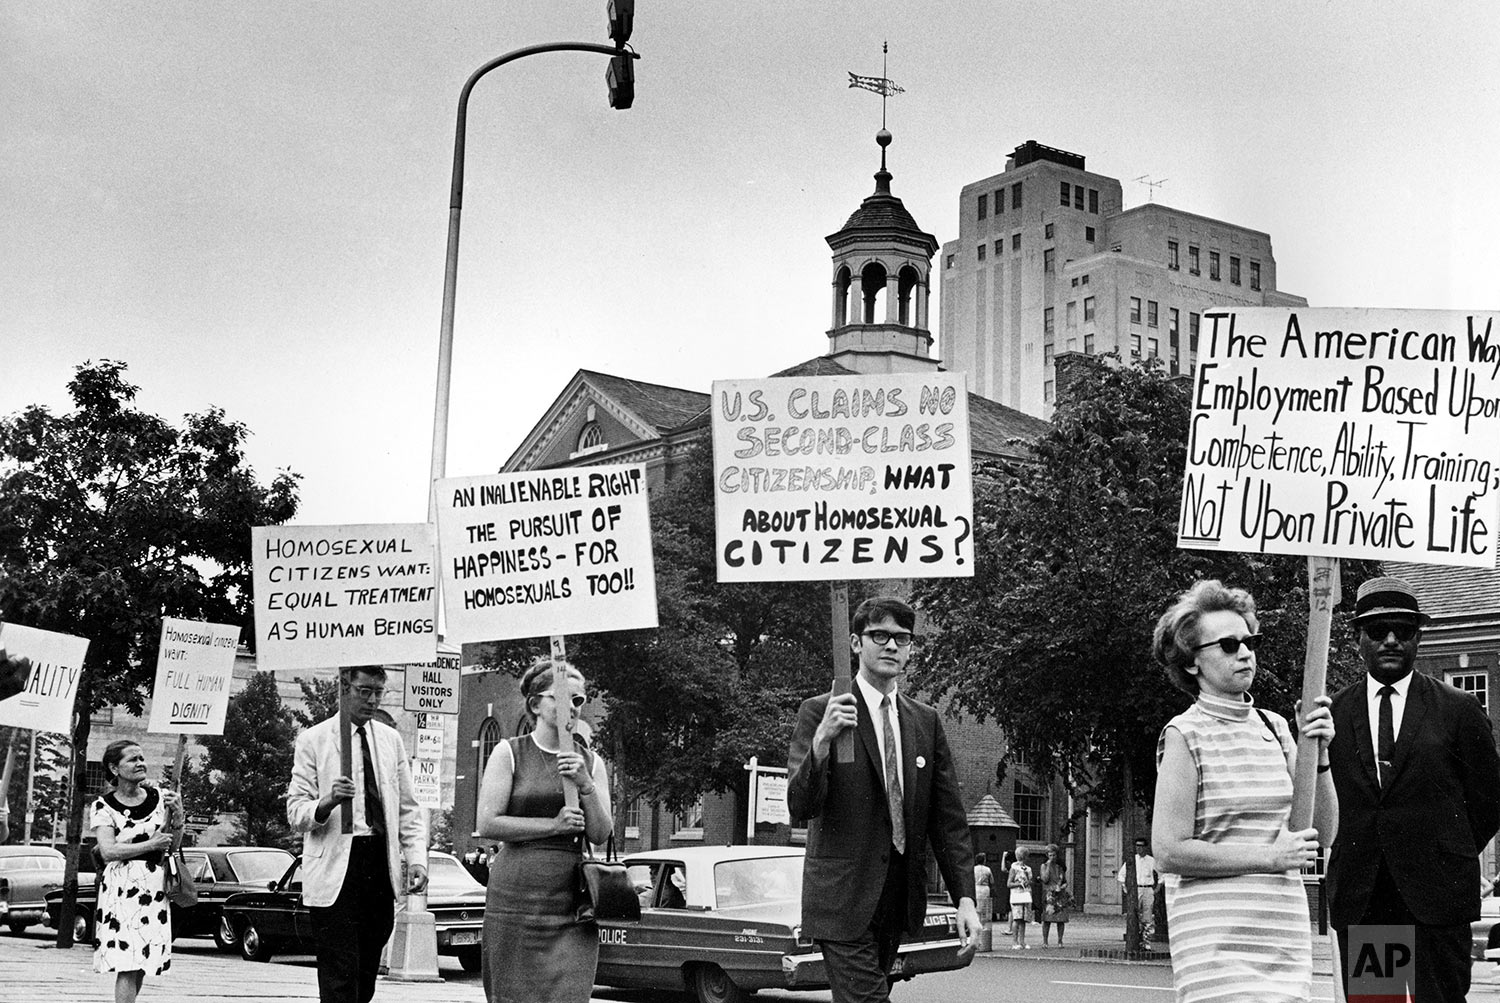 In this July 4, 1967 file photo Kay Tobin Lahusen, right, and other demonstrators carry signs calling for protection of homosexuals from discrimination as they march in a picket line in front of Independence Hall in Philadelphia. In 2019, same-sex marriage is the law of the land in the U.S. and at least 25 other countries. LGBT Americans serve as governors, big-city mayors and members of Congress, and one _ Pete Buttigieg _ is waging a spirited campaign for president. (AP Photo/John F. Urwiller)